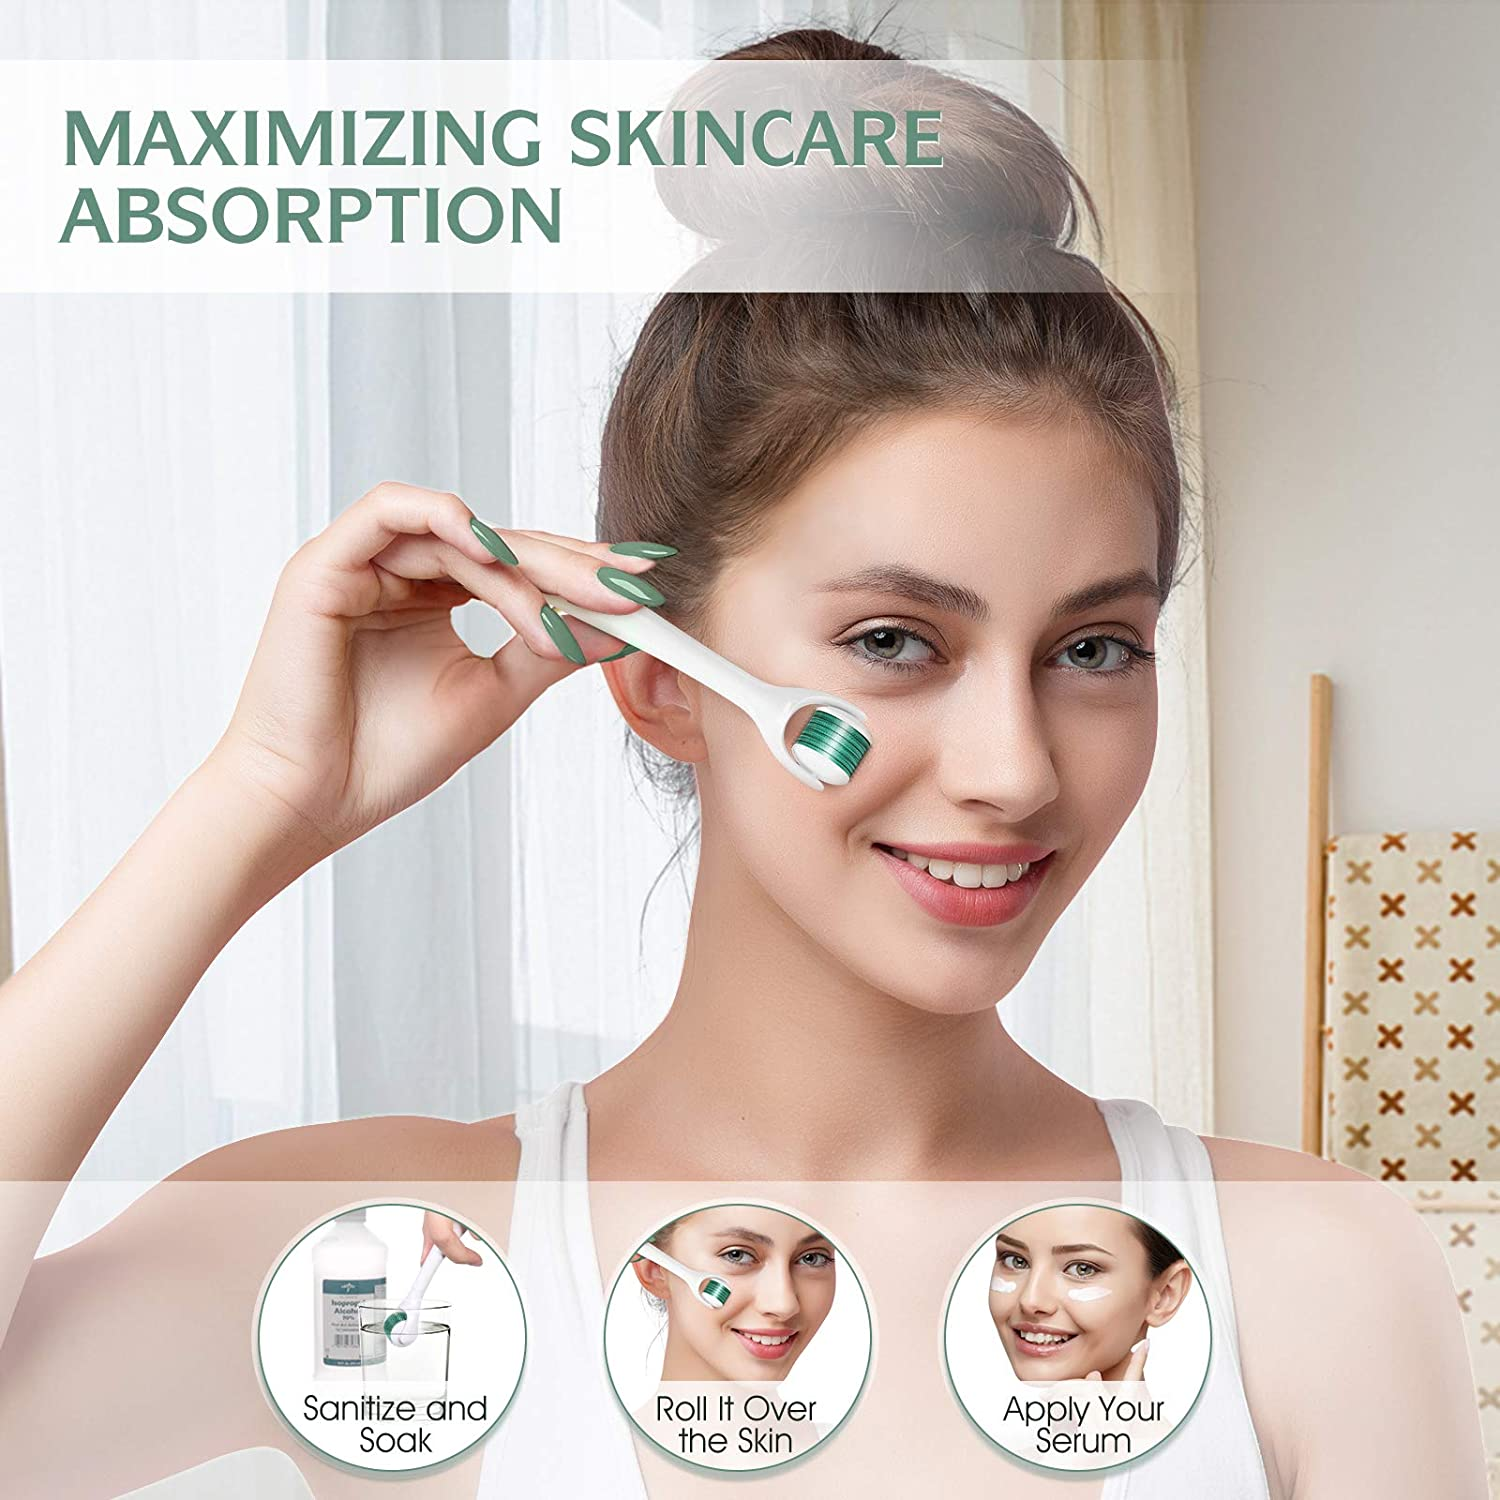 Derma Roller Cleaner, Jade Roller & Derma Roller Kit with 3 Replaceable Heads for Face Body Skin Care